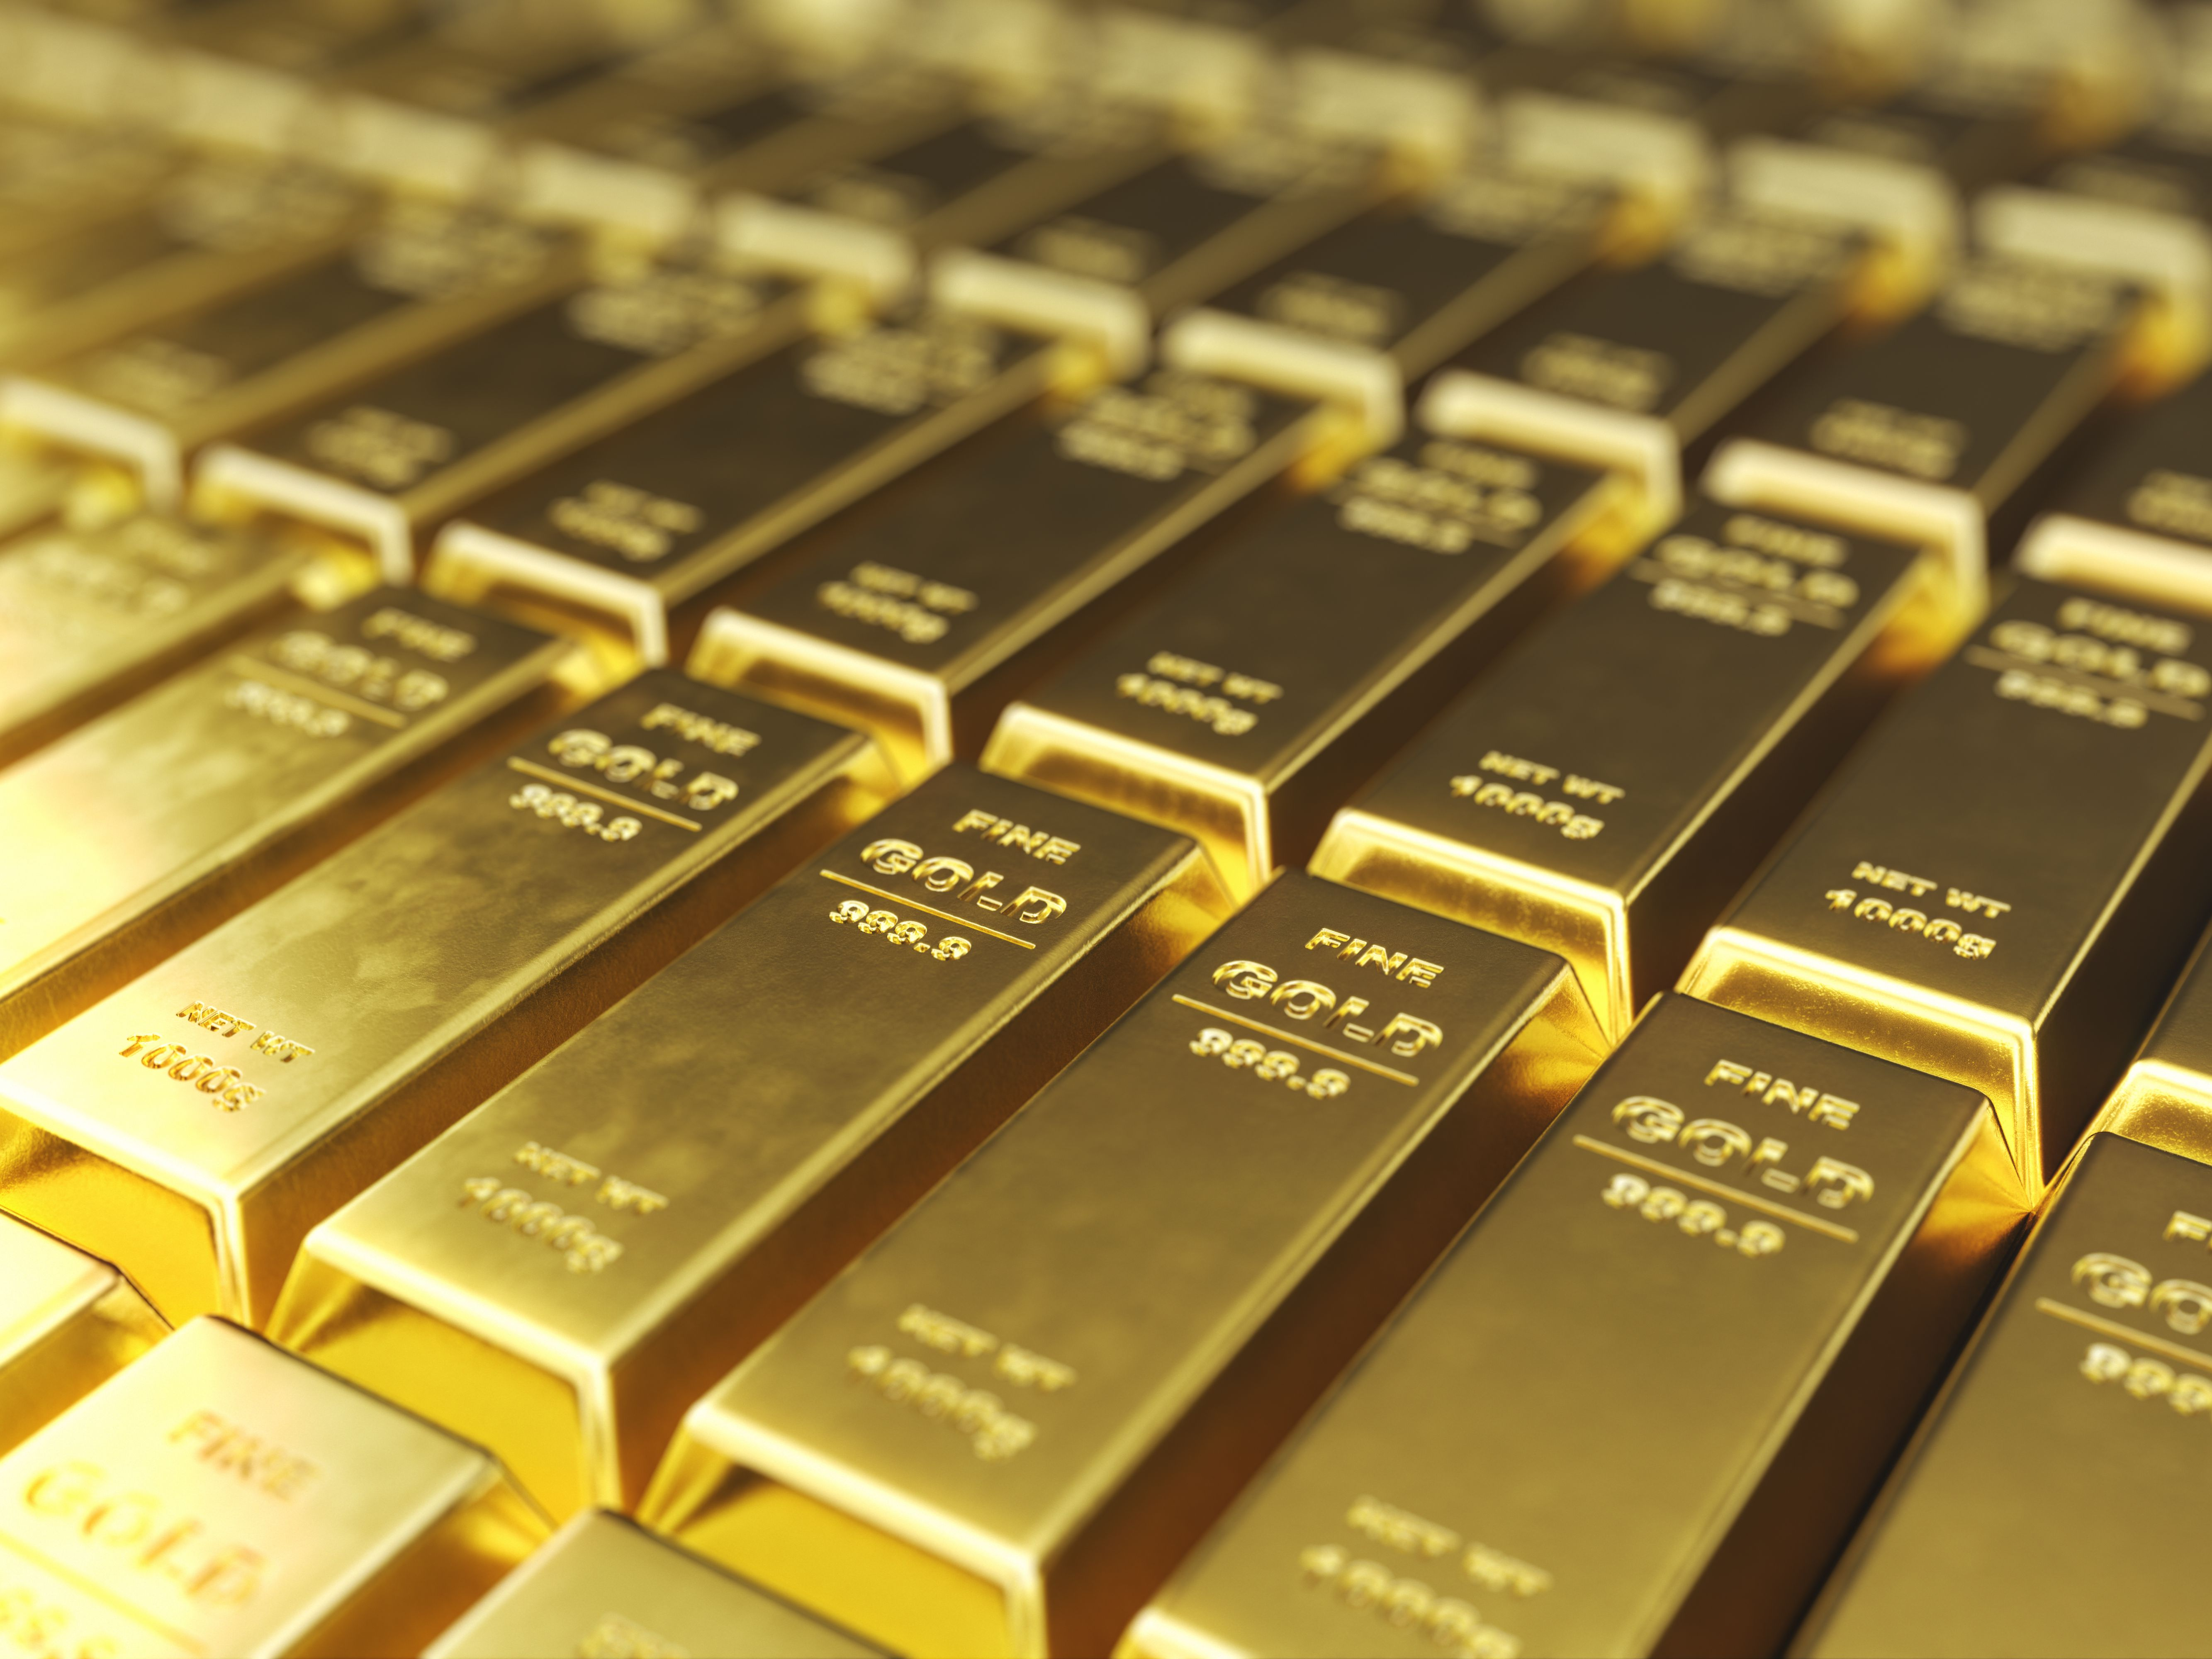 Platinum Versus Gold Both Precious Metals But Which Is More Precious